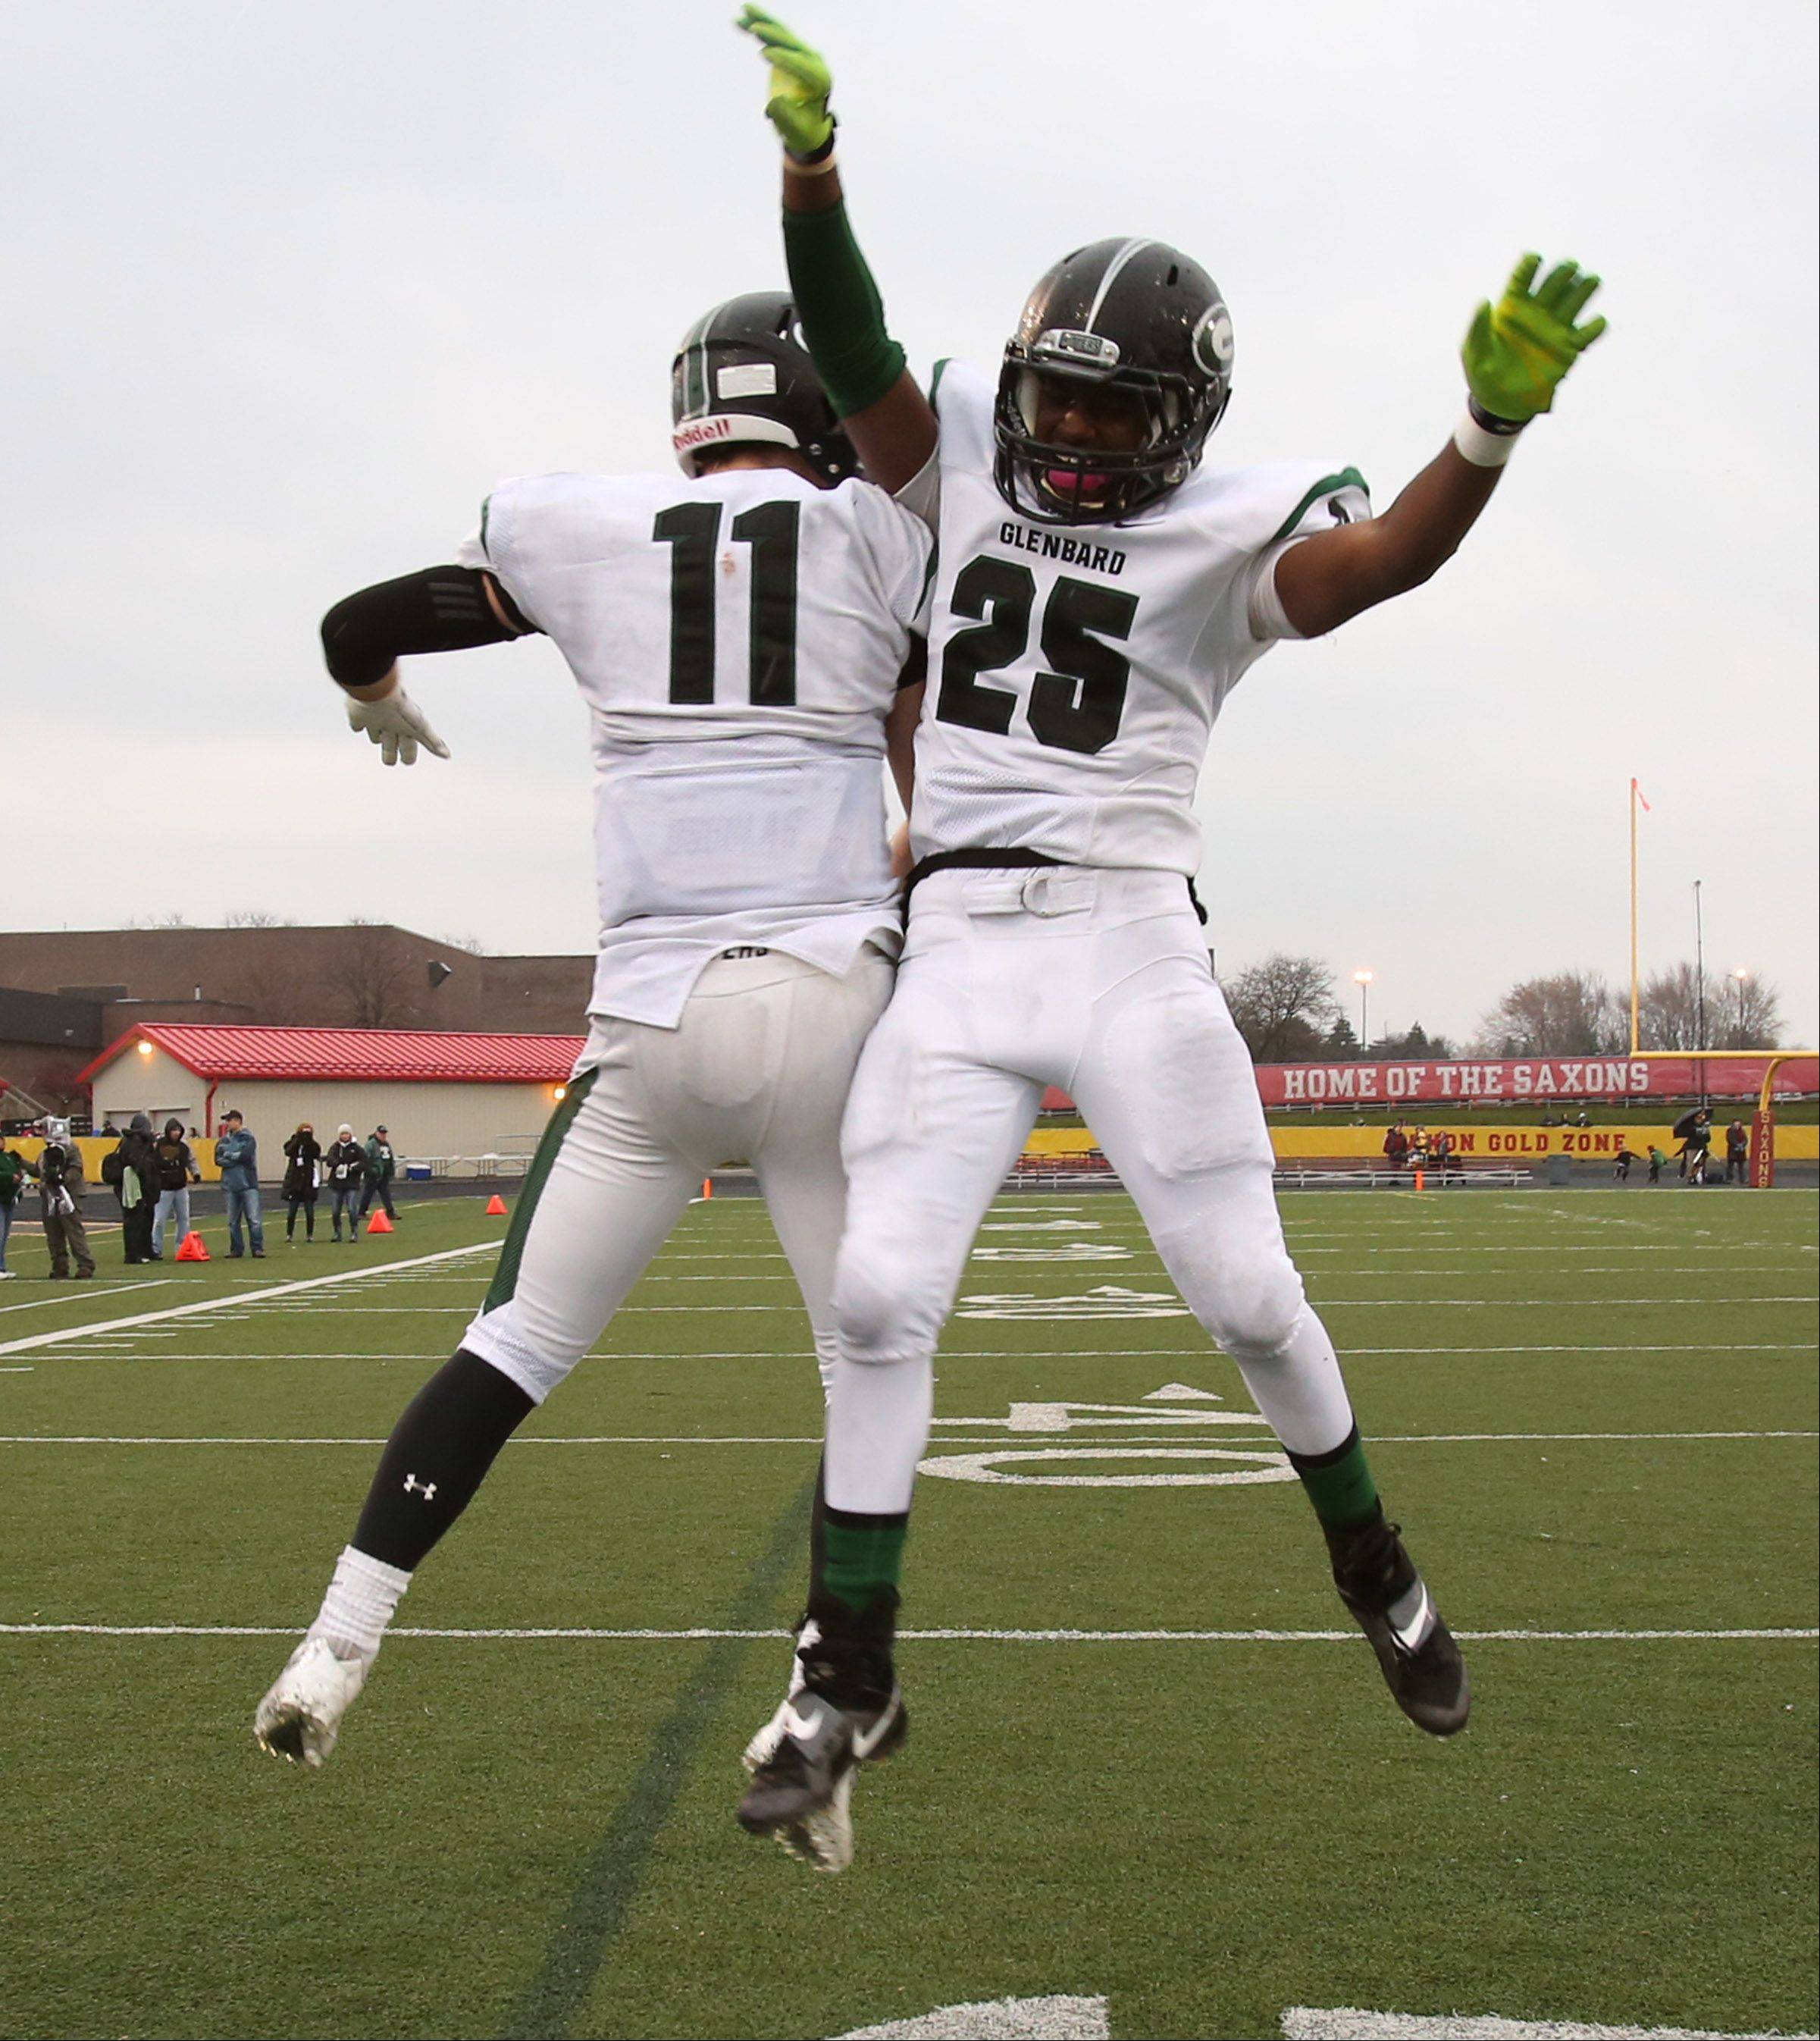 Glenbard West Grant Greeno, left, and Jordon Andrews celebrate as the clock expires as Glenbard West wins 42-21 over Schaumburg in a quarterfinal playoff game on Saturday in Schaumburg.